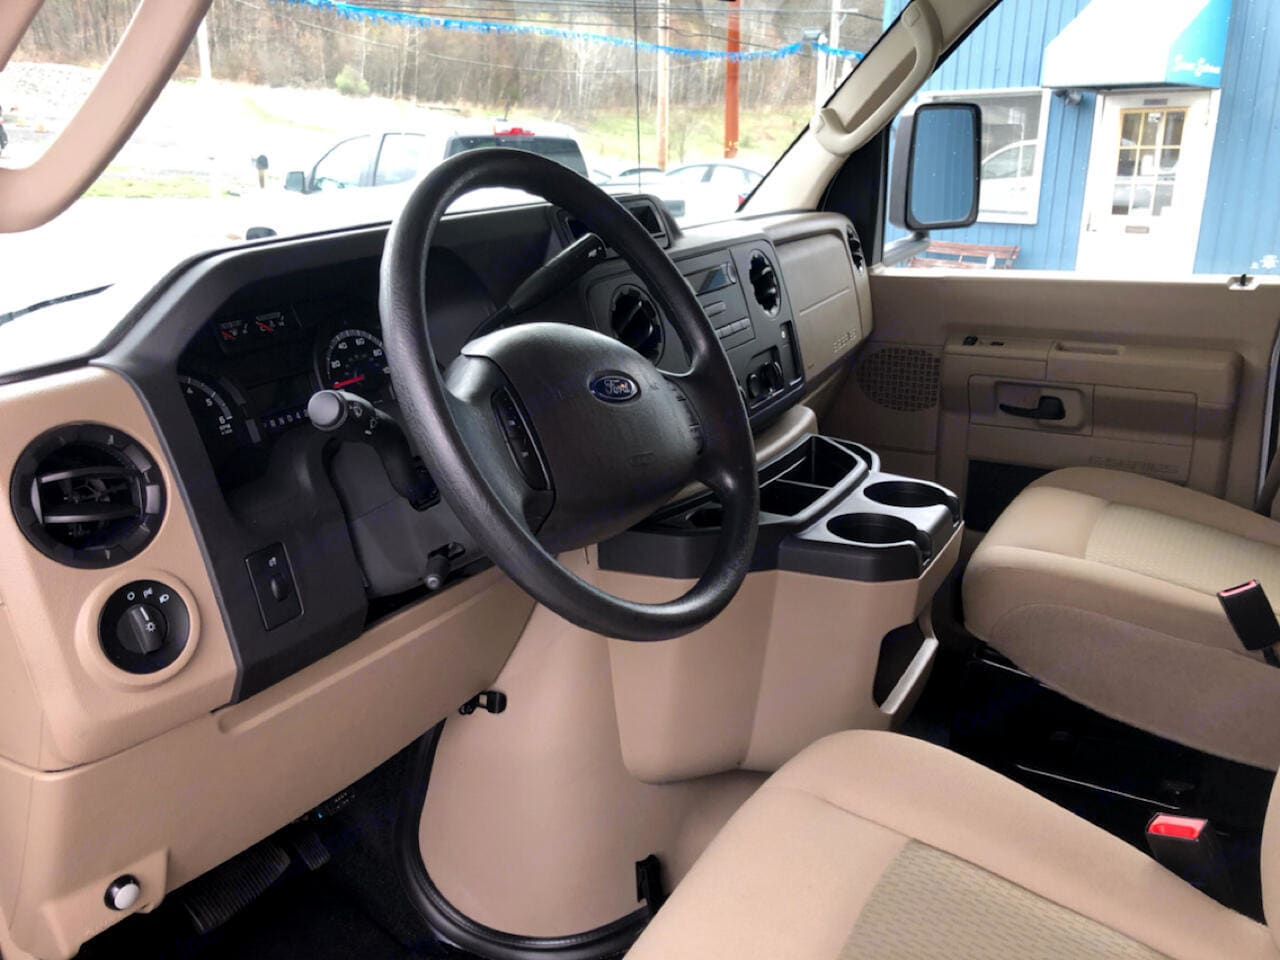 Comfortable seating up front for driver and navigator. Jayco Redhawk 2017